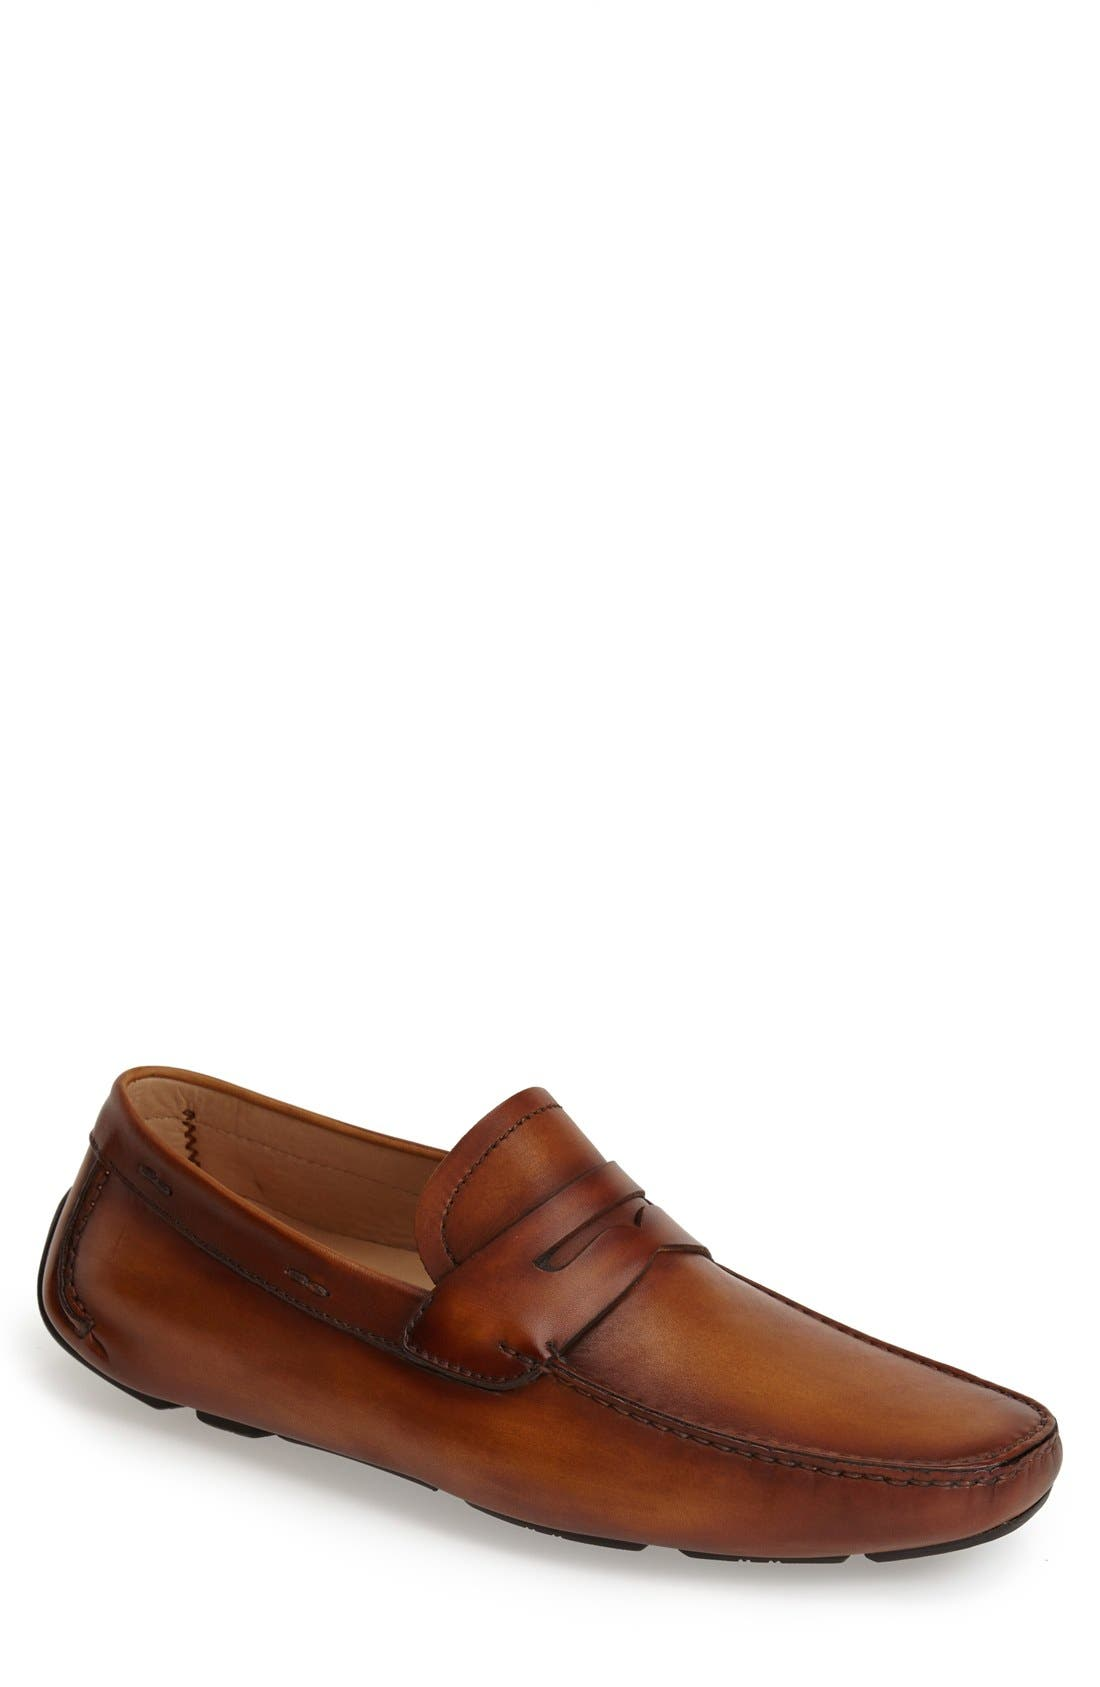 'Dylan' Leather Driving Shoe,                             Main thumbnail 4, color,